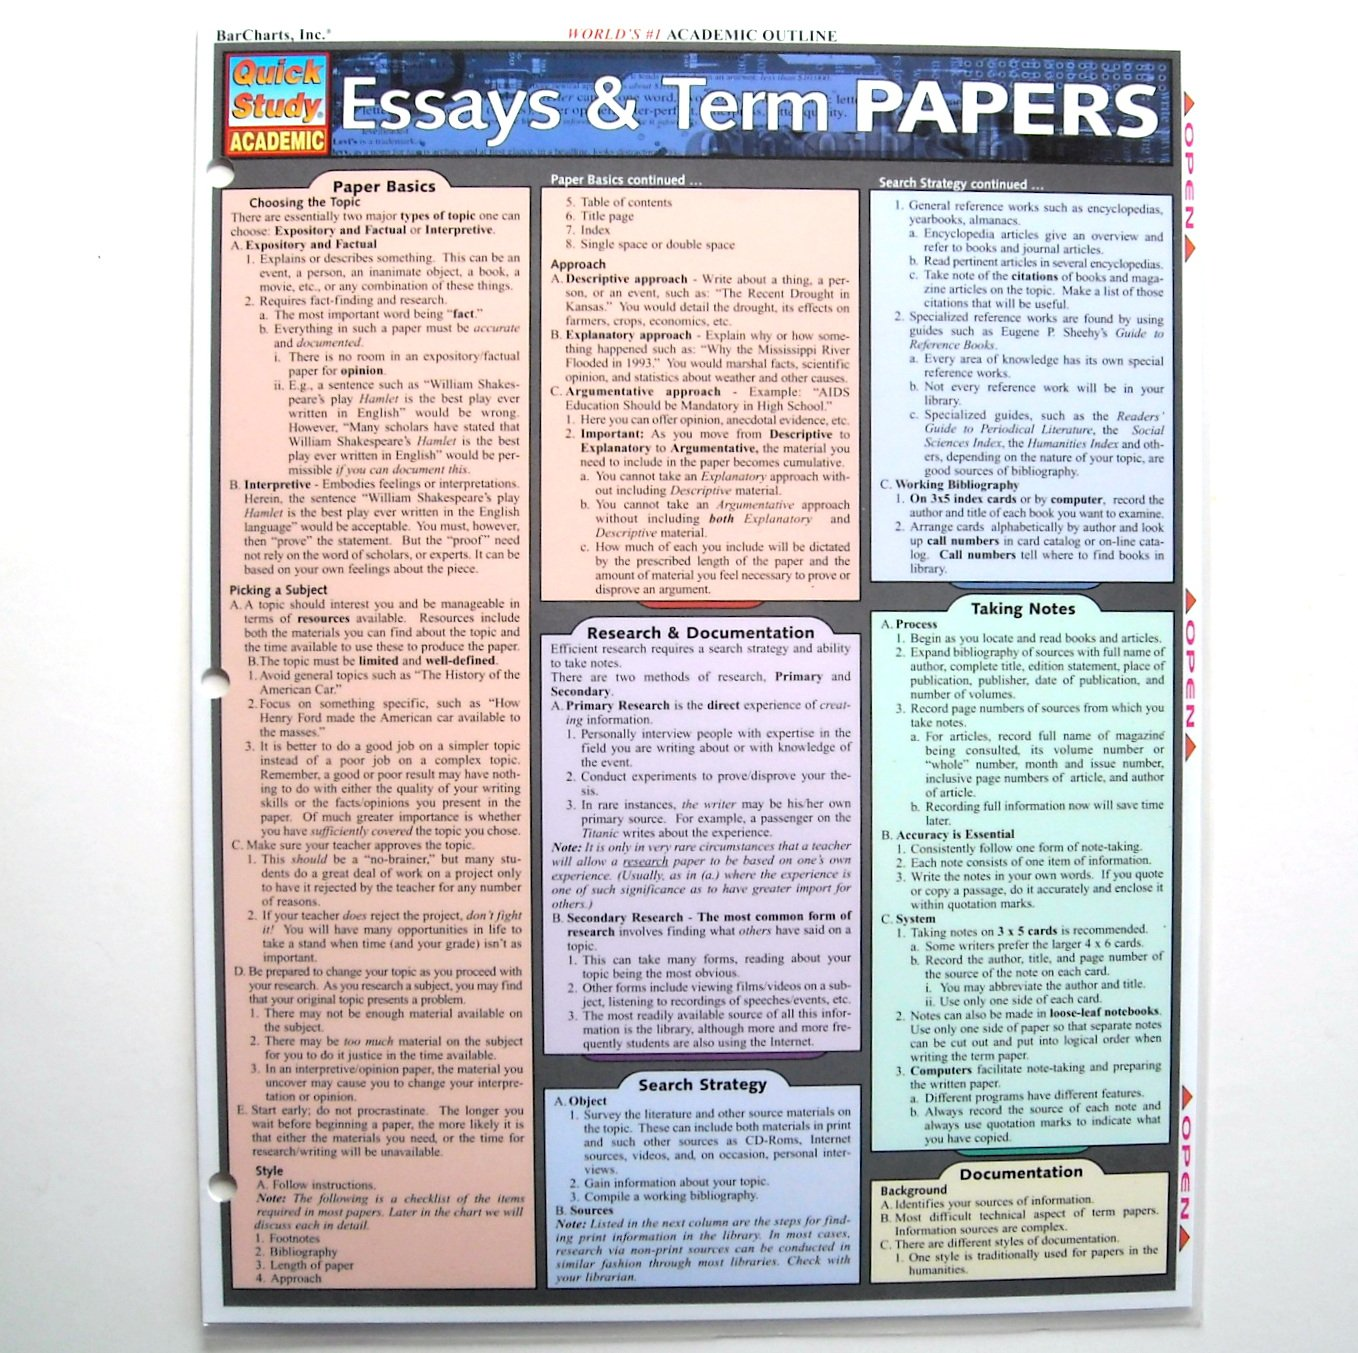 essay and term papers barchart